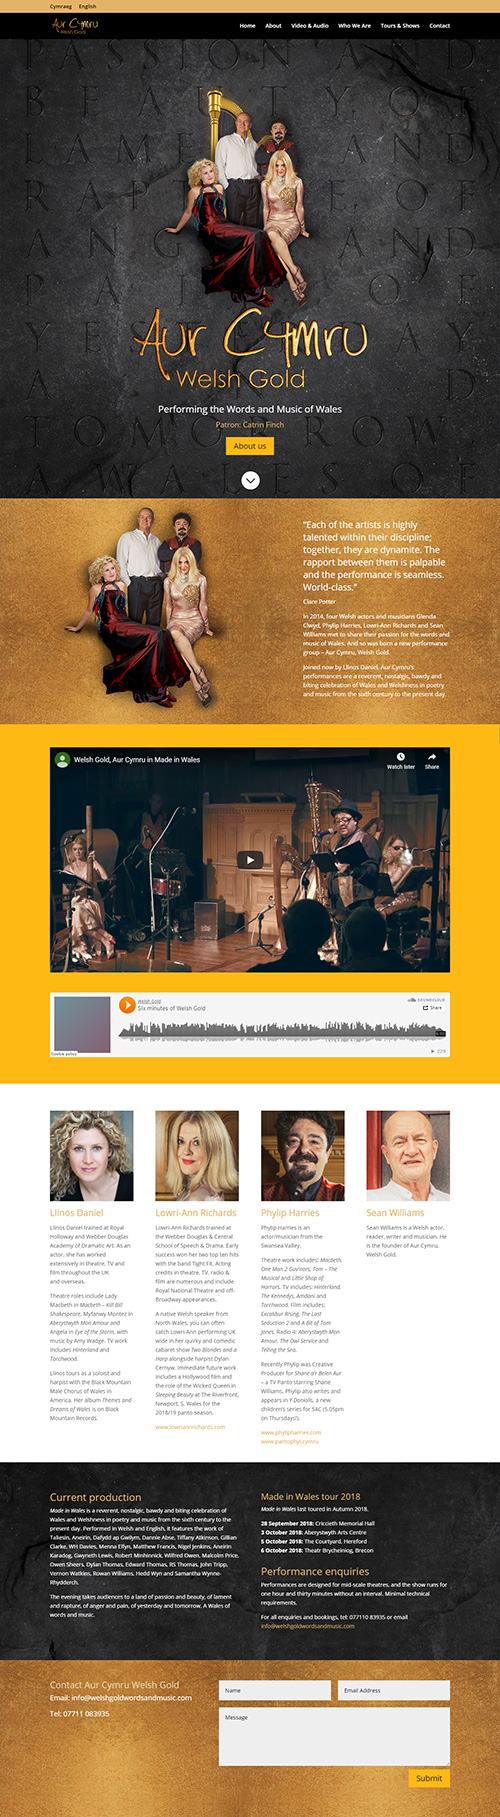 Theatre tour website design with CMS for Aur Cymru Welsh Gold